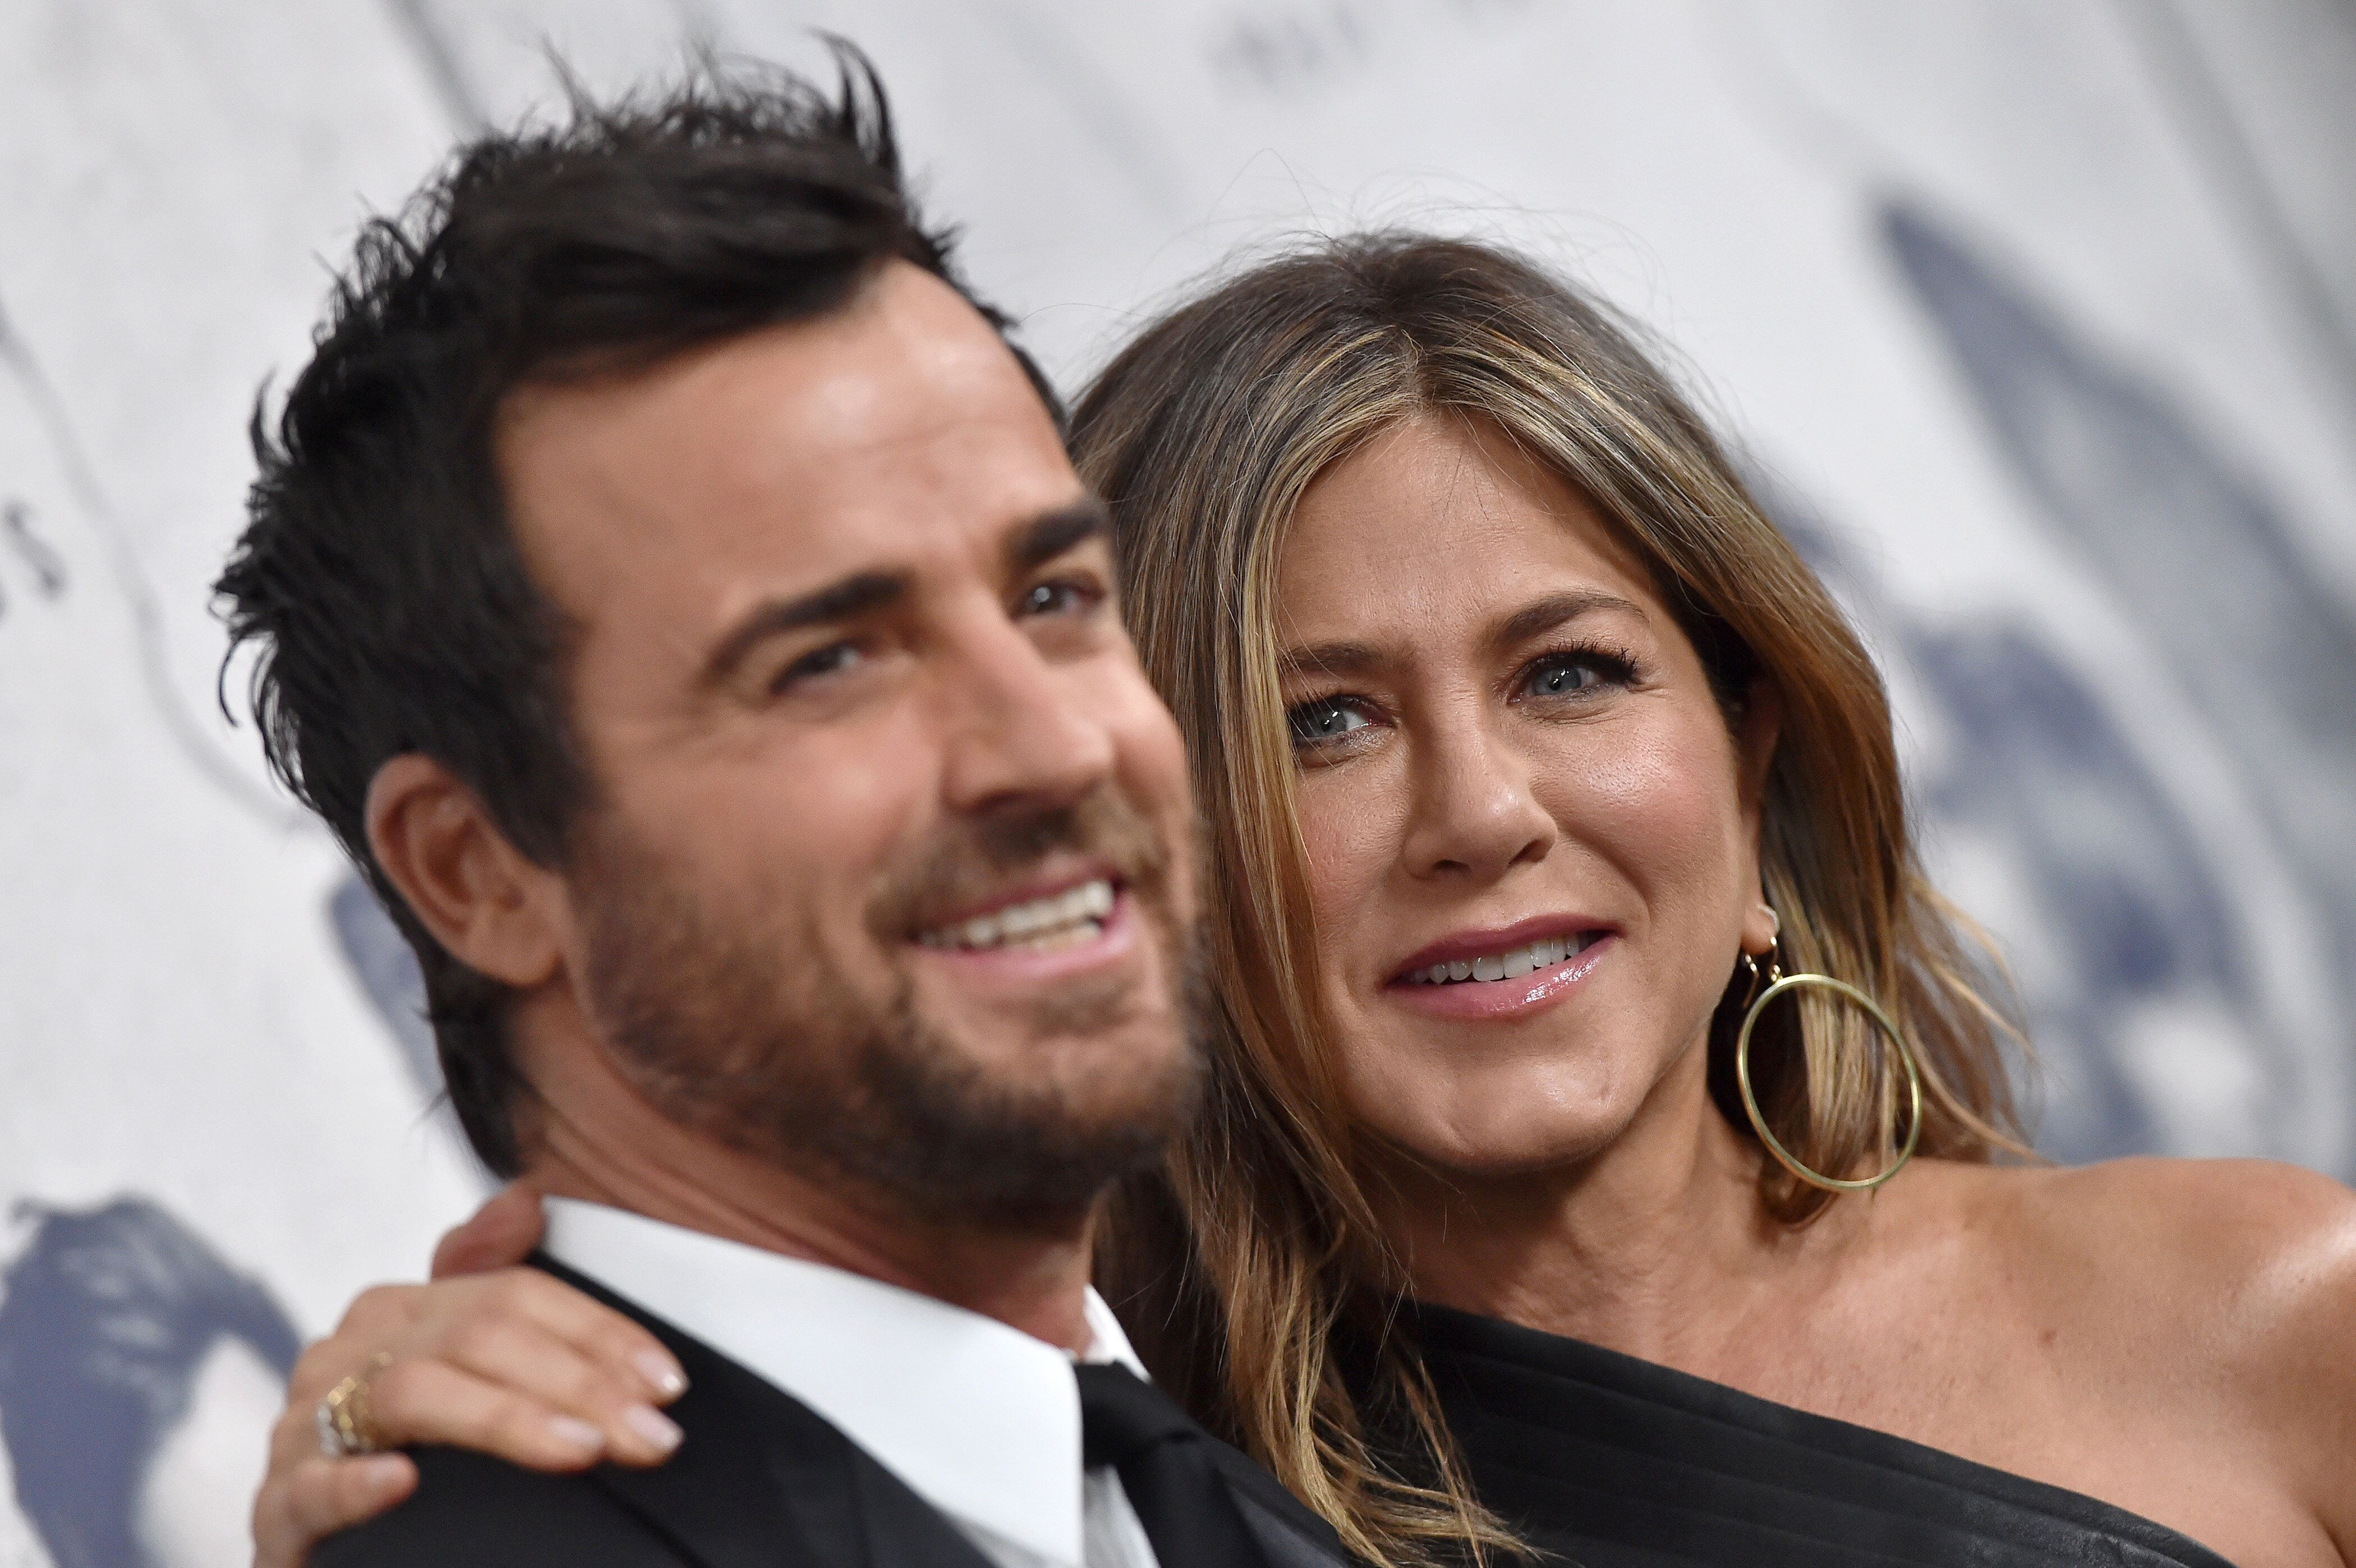 Justin Theroux and Jennifer Aniston pictured in April